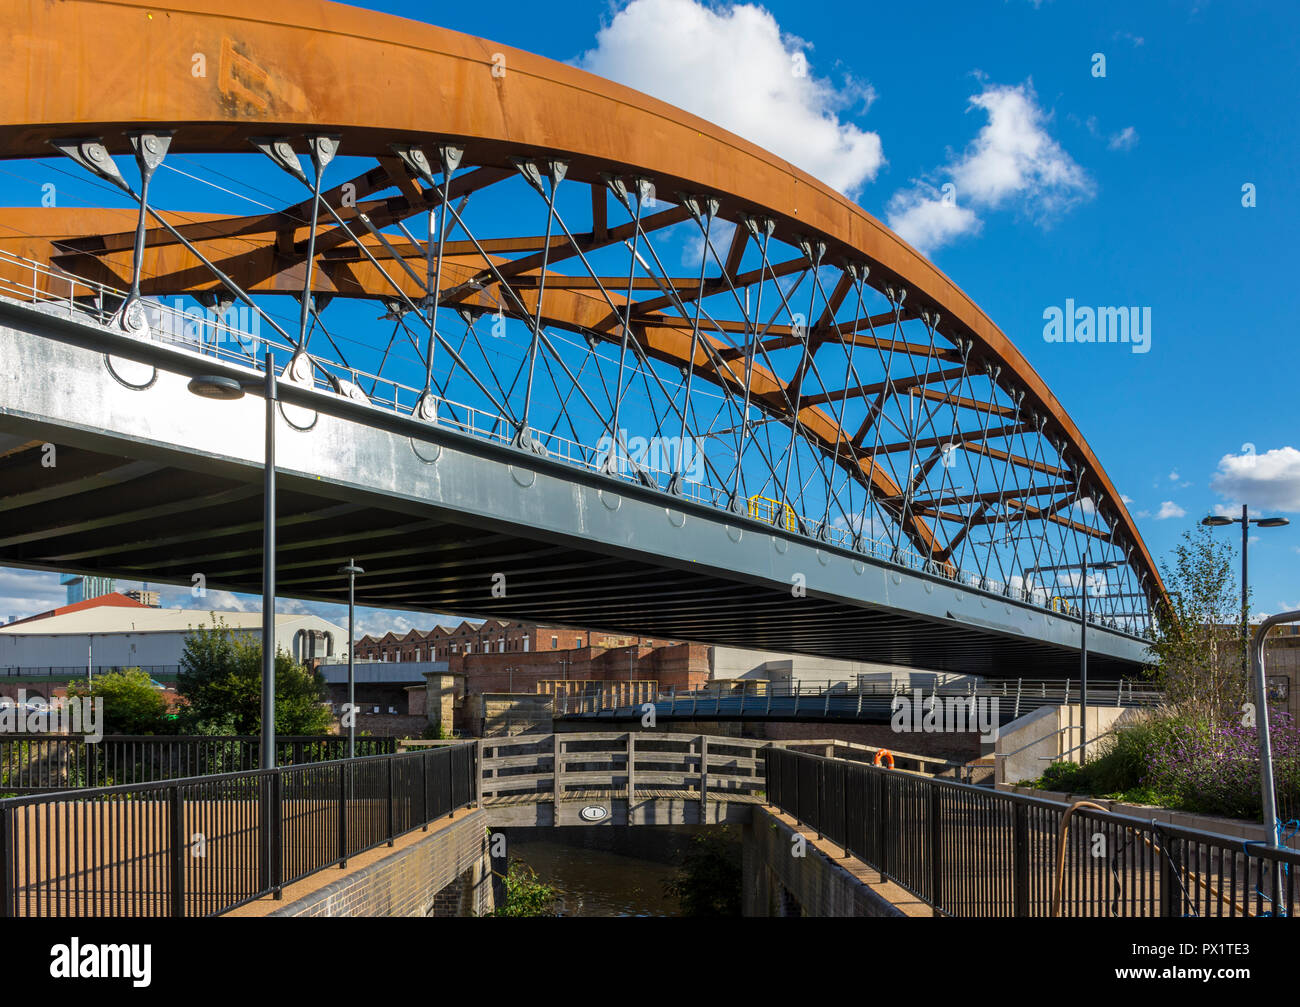 The Ordsall Chord rail bridge over the river Irwell at the junction with the Manchester, Bolton and Bury canal, Salford, Manchester, England, UK - Stock Image